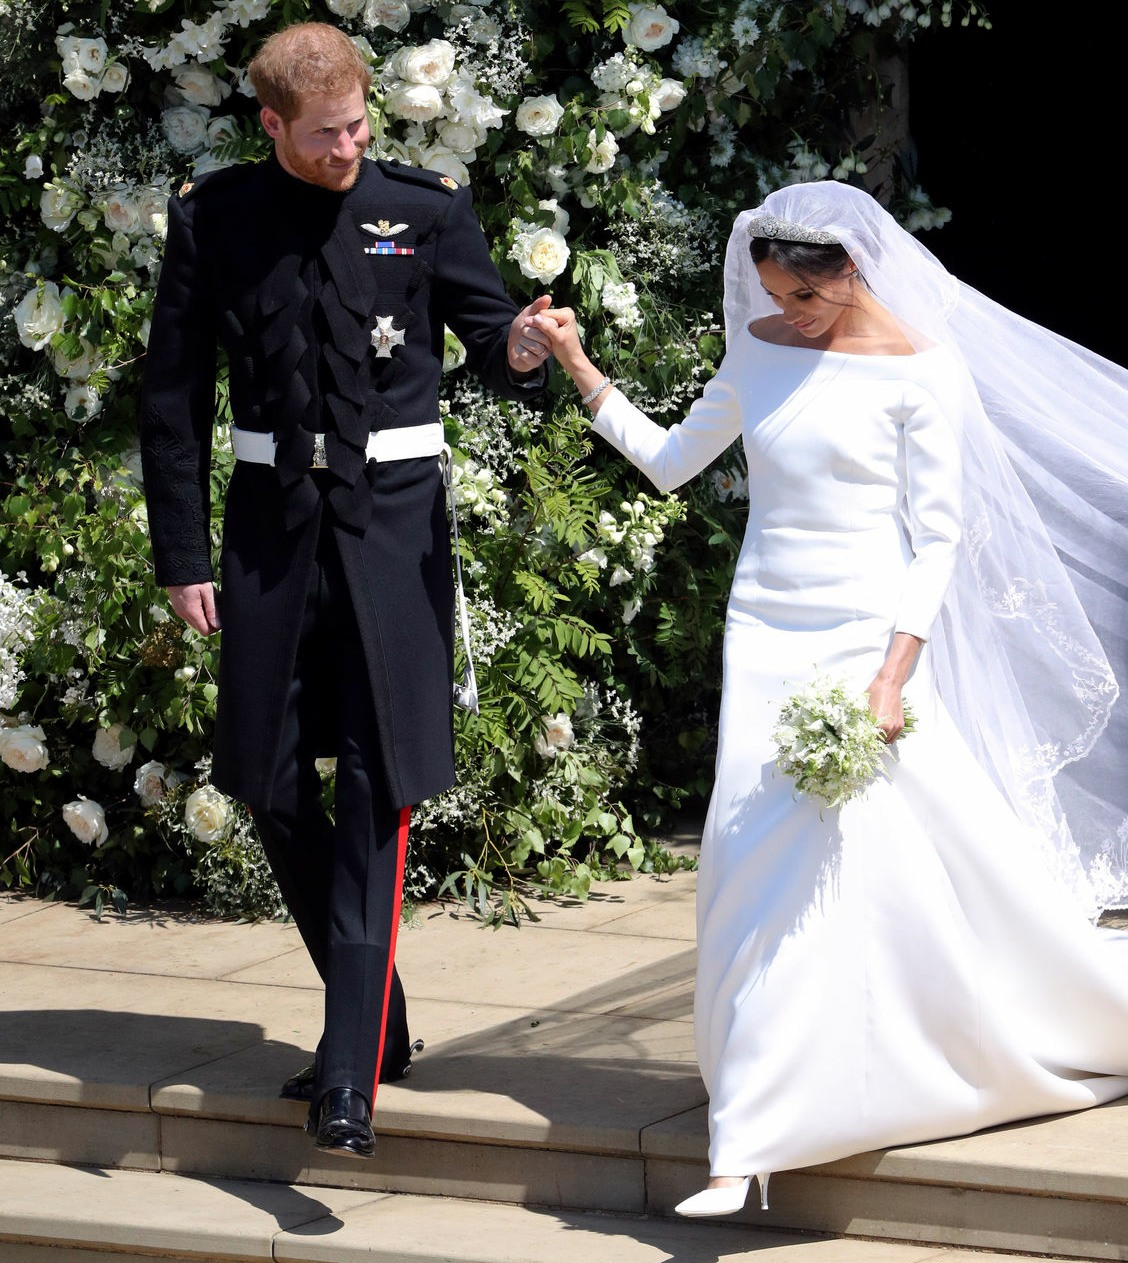 Prince Harry and Meghan Markle leave St George's Chapel in Windsor Castle after their wedding